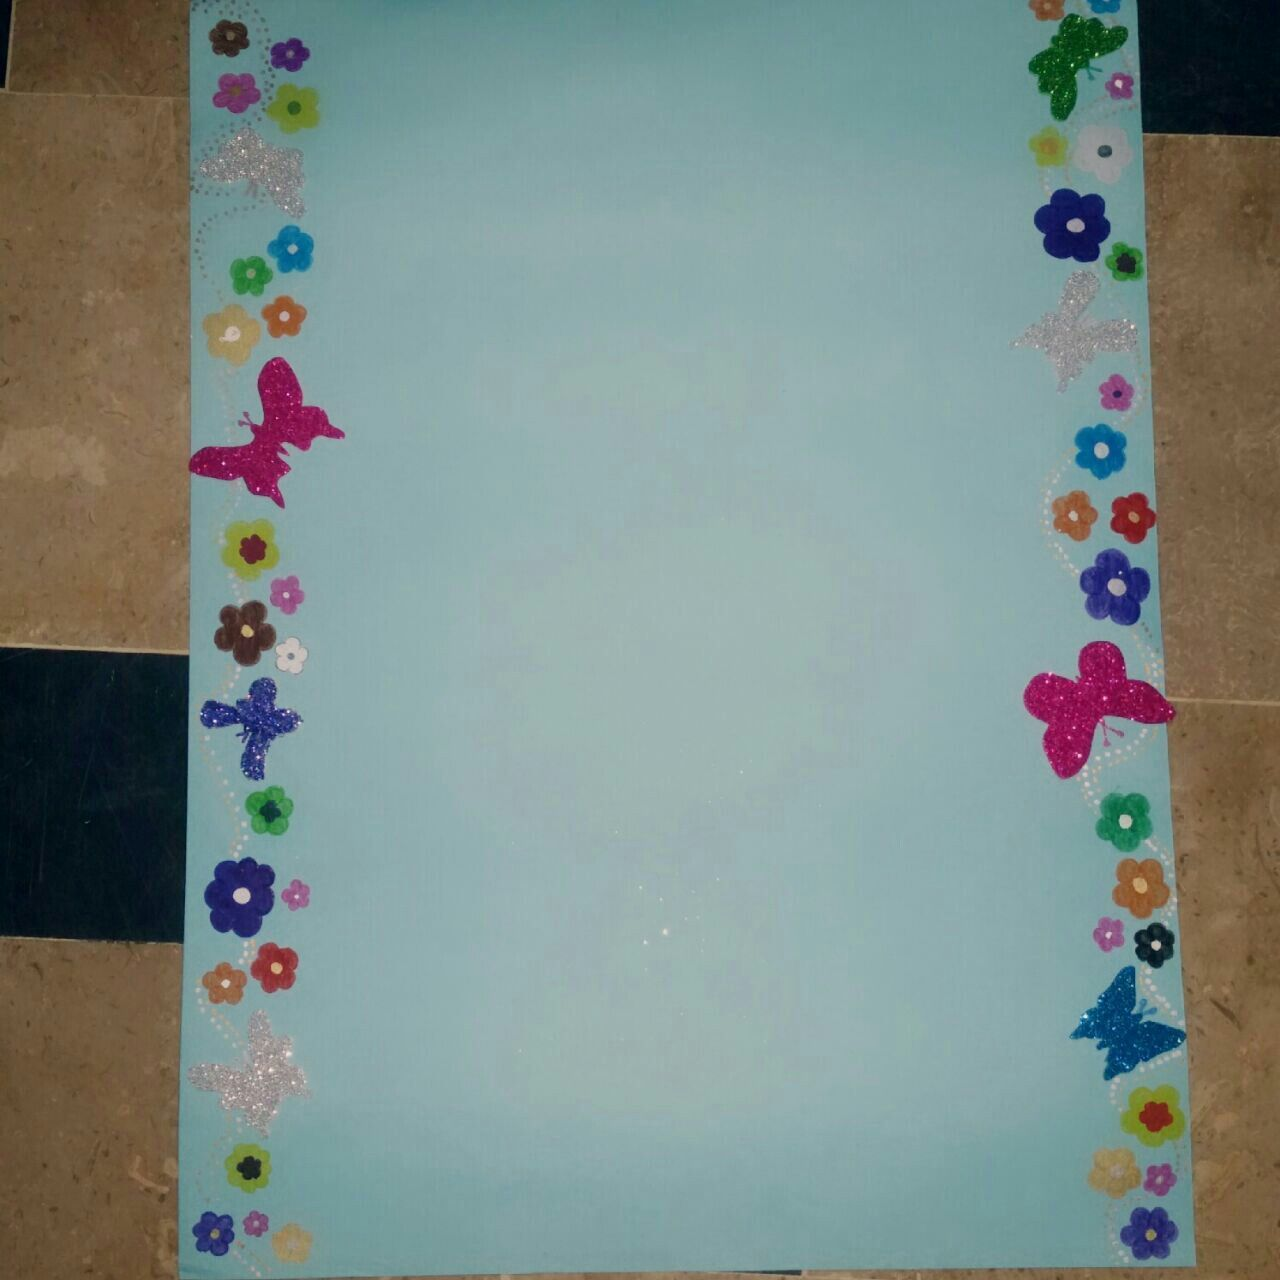 How To Decorate Girly Bedroom: How To Decorate Chart Paper For School Project